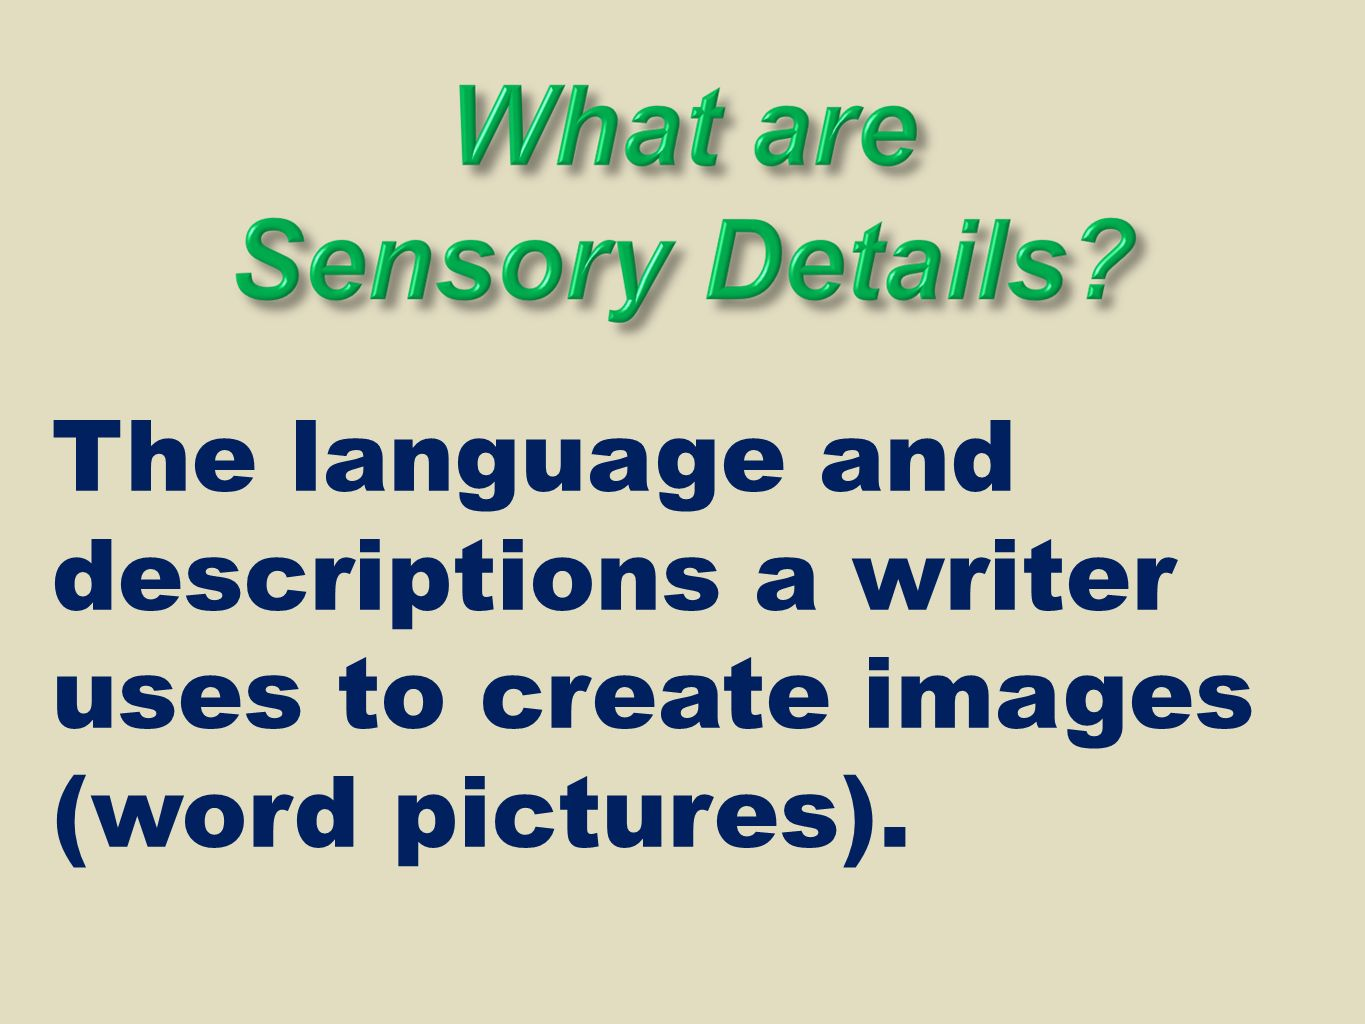 The language and descriptions a writer uses to create images (word pictures).